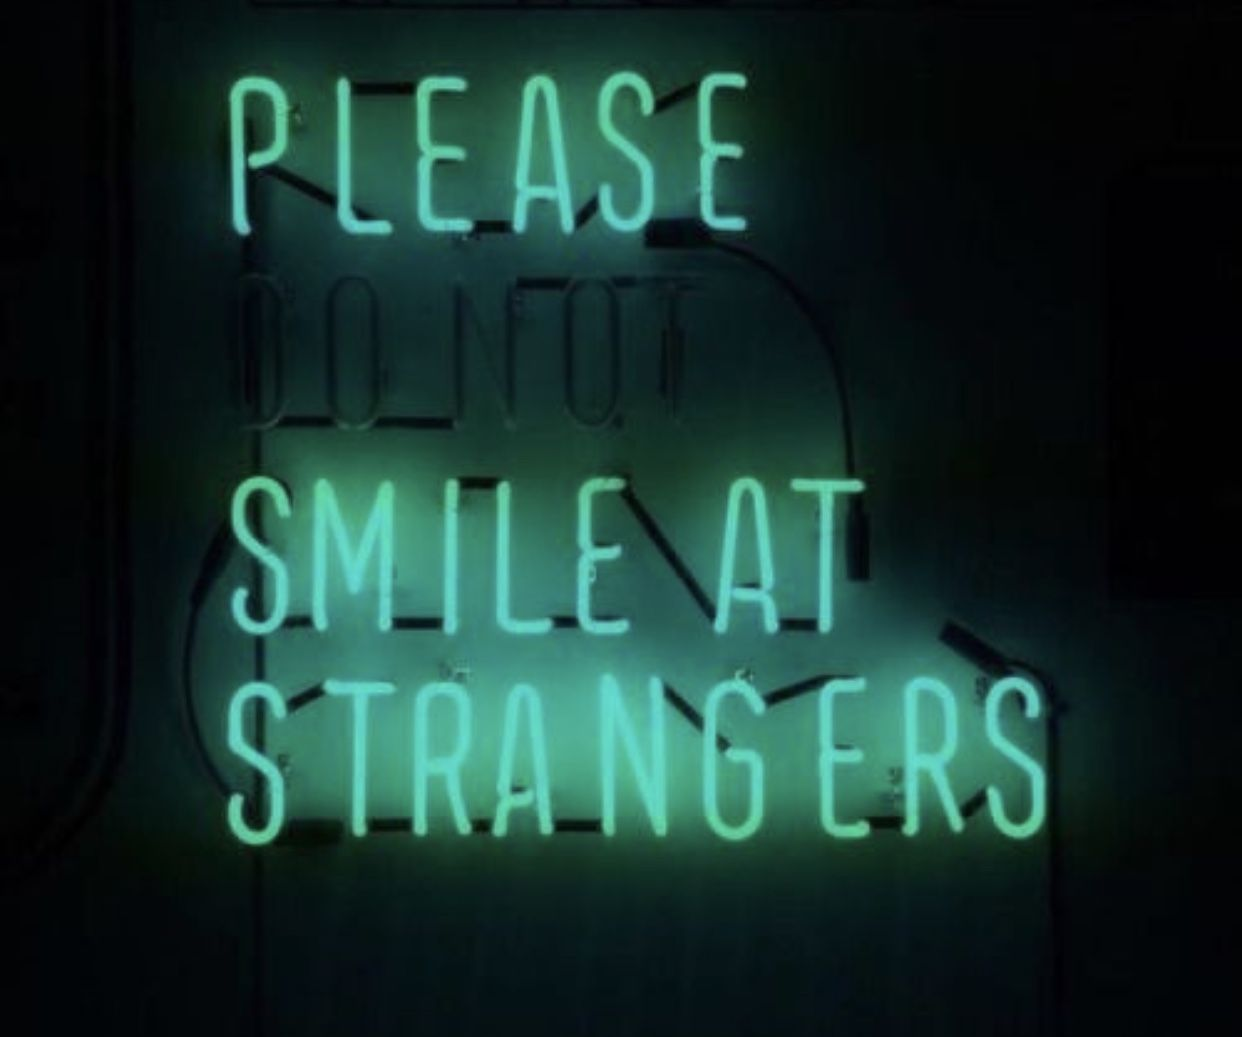 Pin by Juliette on WALLPAPERS. Neon signs, Neon quotes